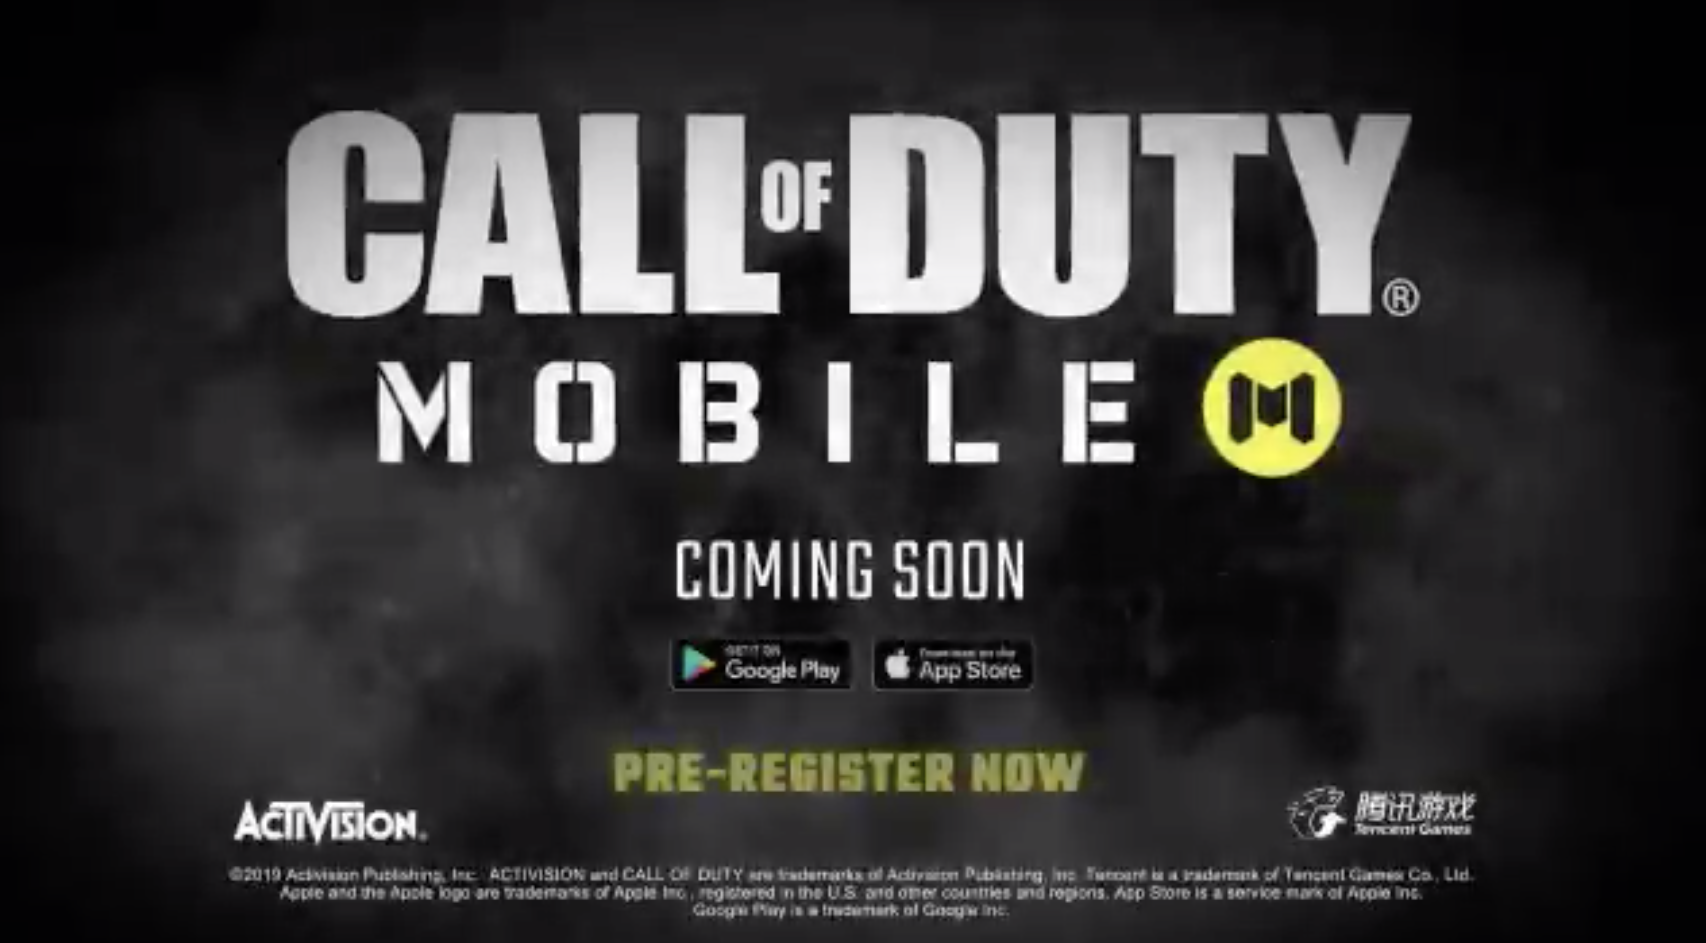 charlieintel.com - New Call of Duty Mobile Game Coming Soon